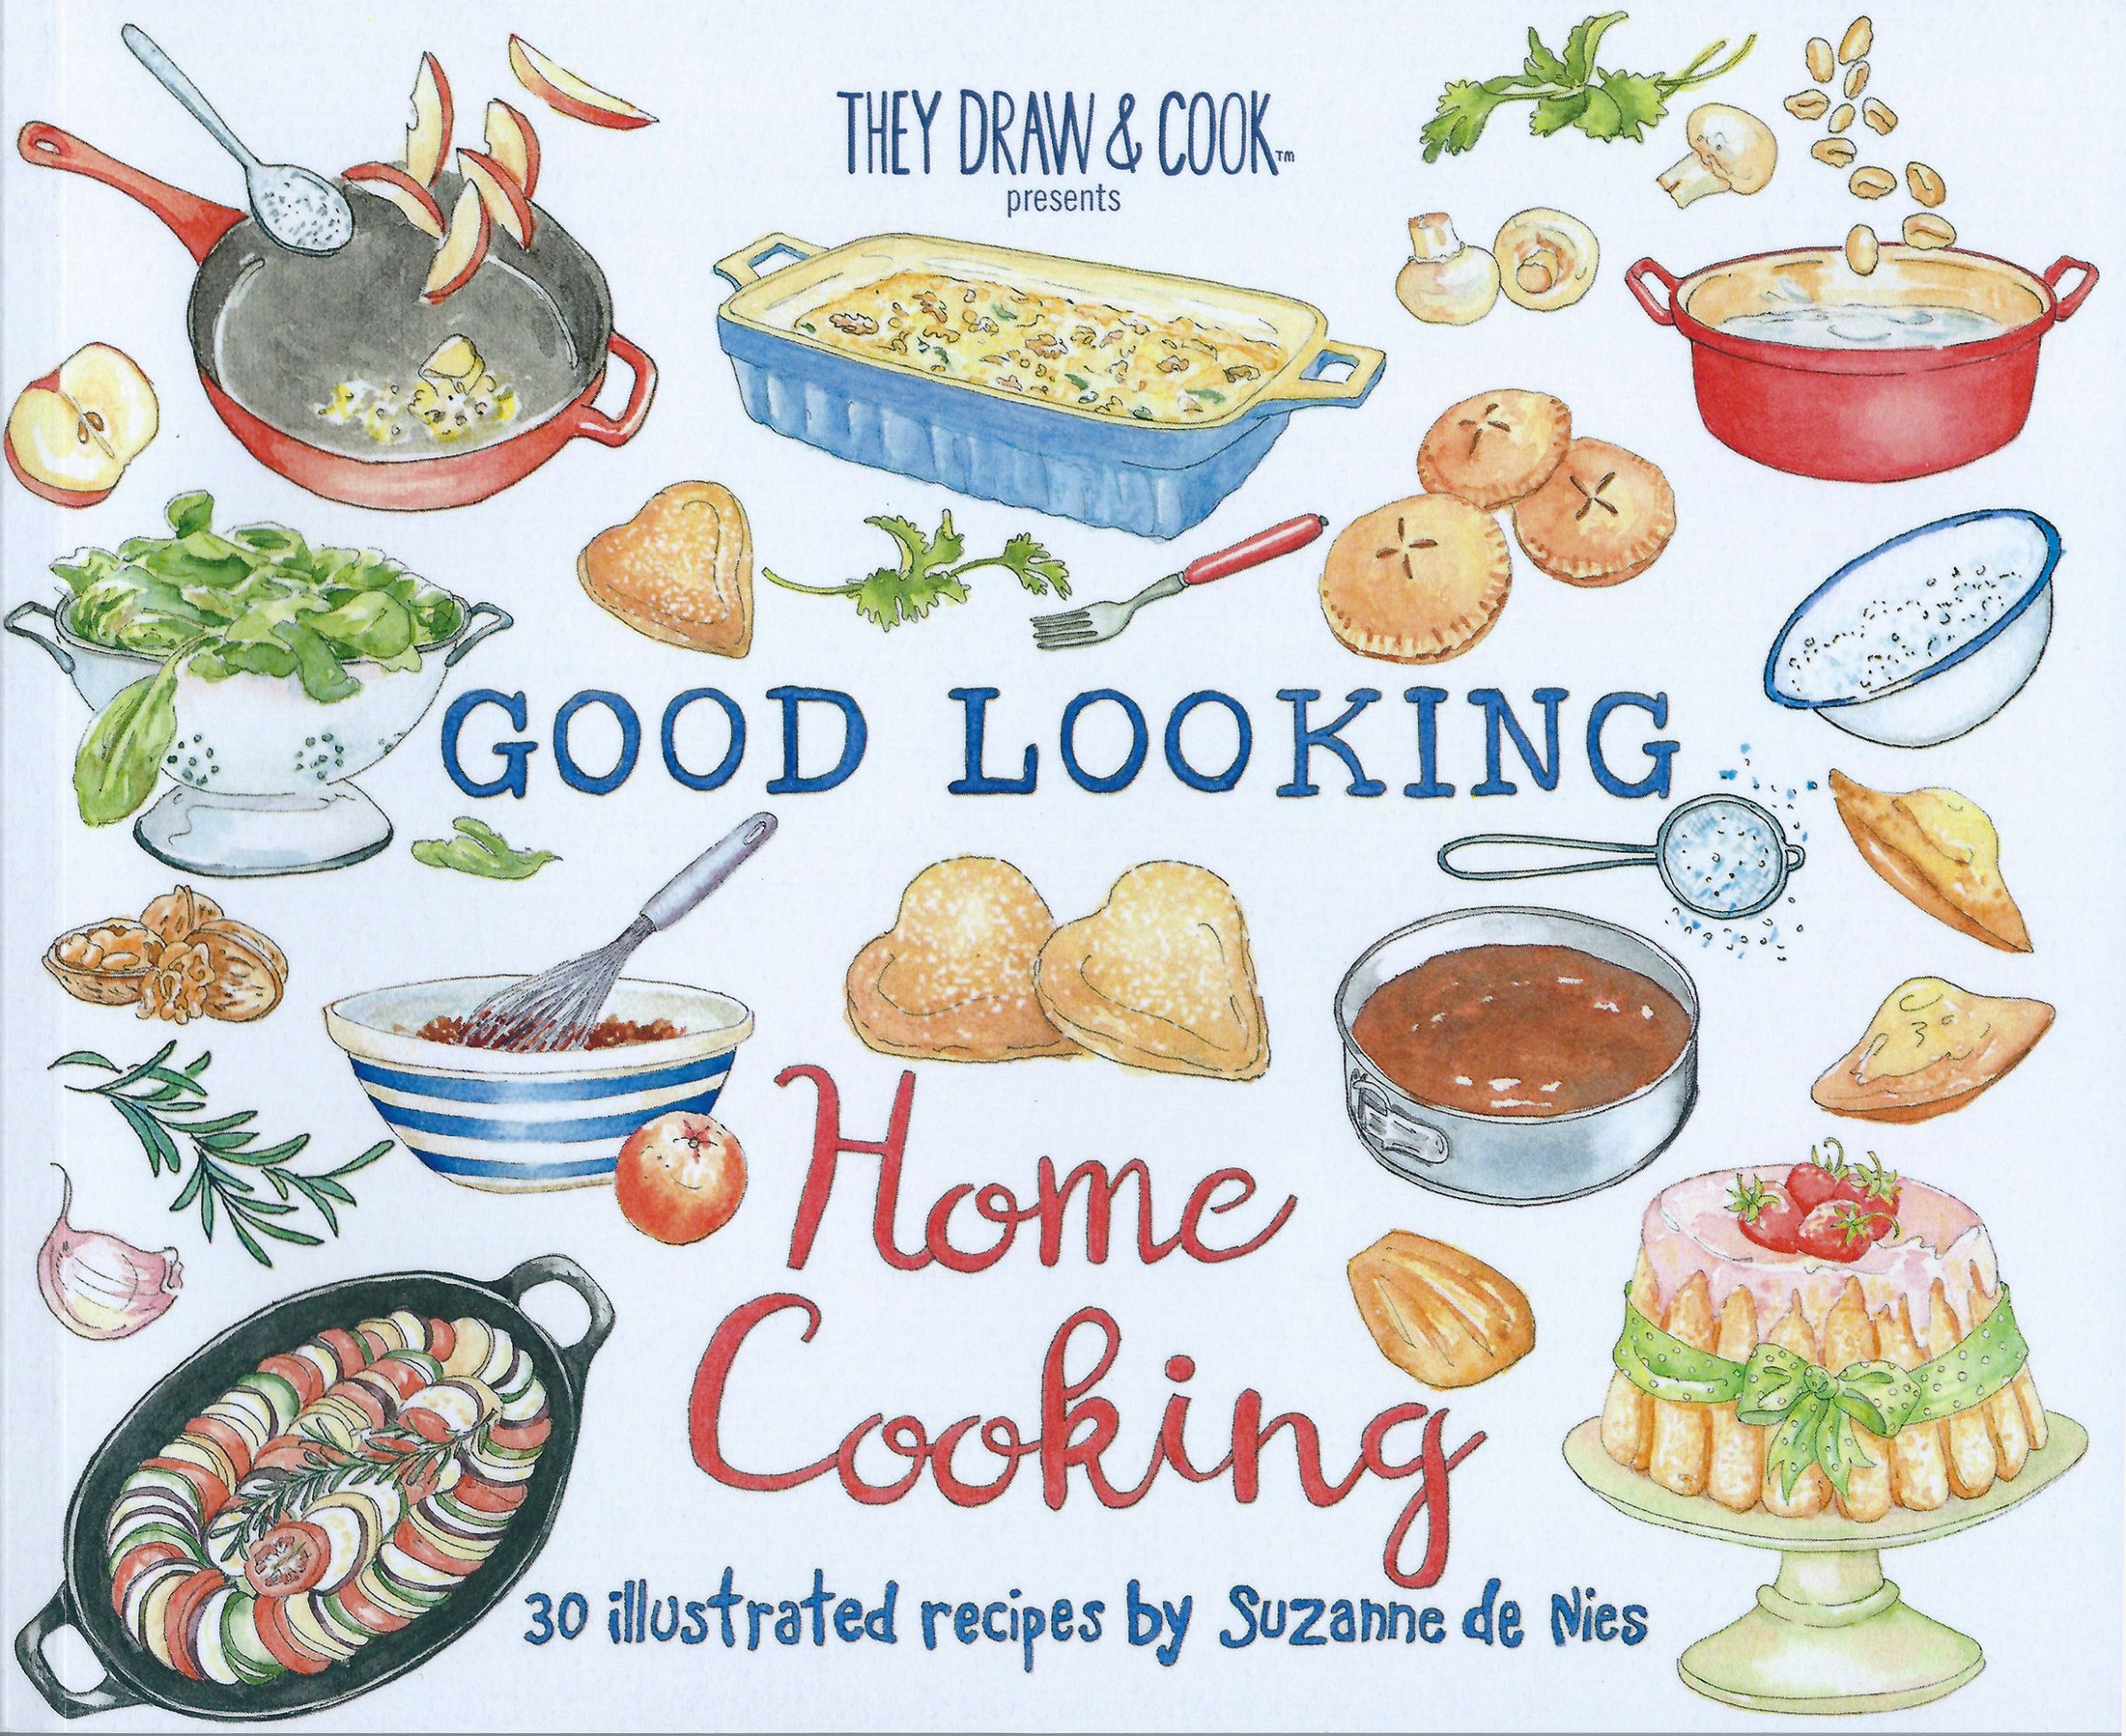 Good Looking Home Cooking | Suzanne de Nies - Recipes Home Cooking